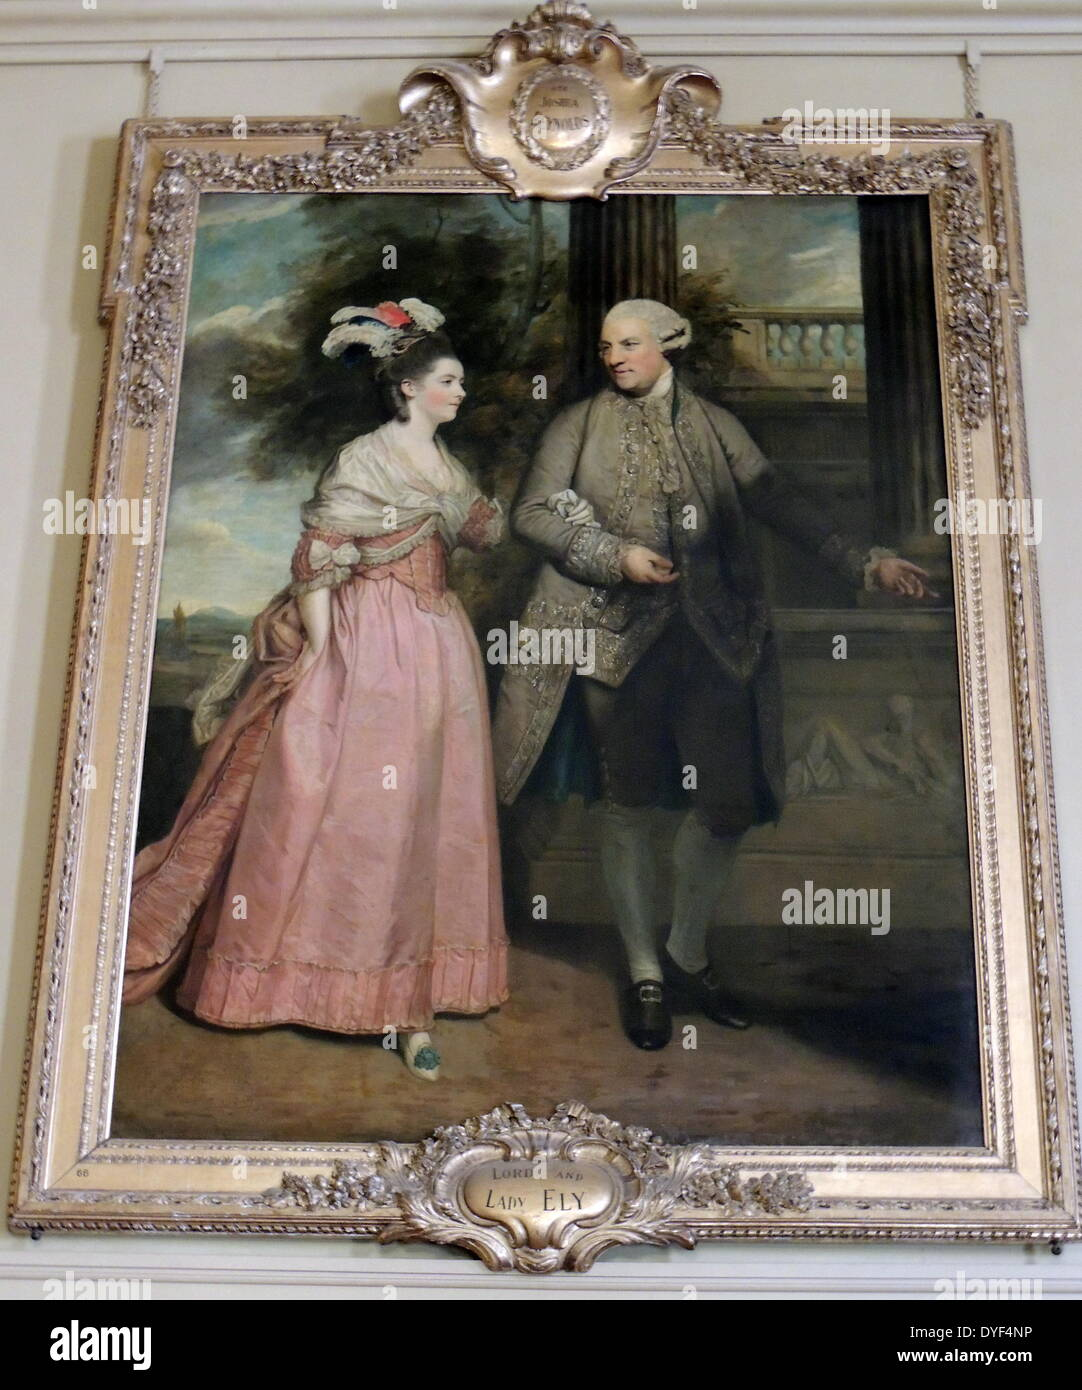 Painting of Earl Henry Loftus and wife Countess Frances Monroe. - Stock Image